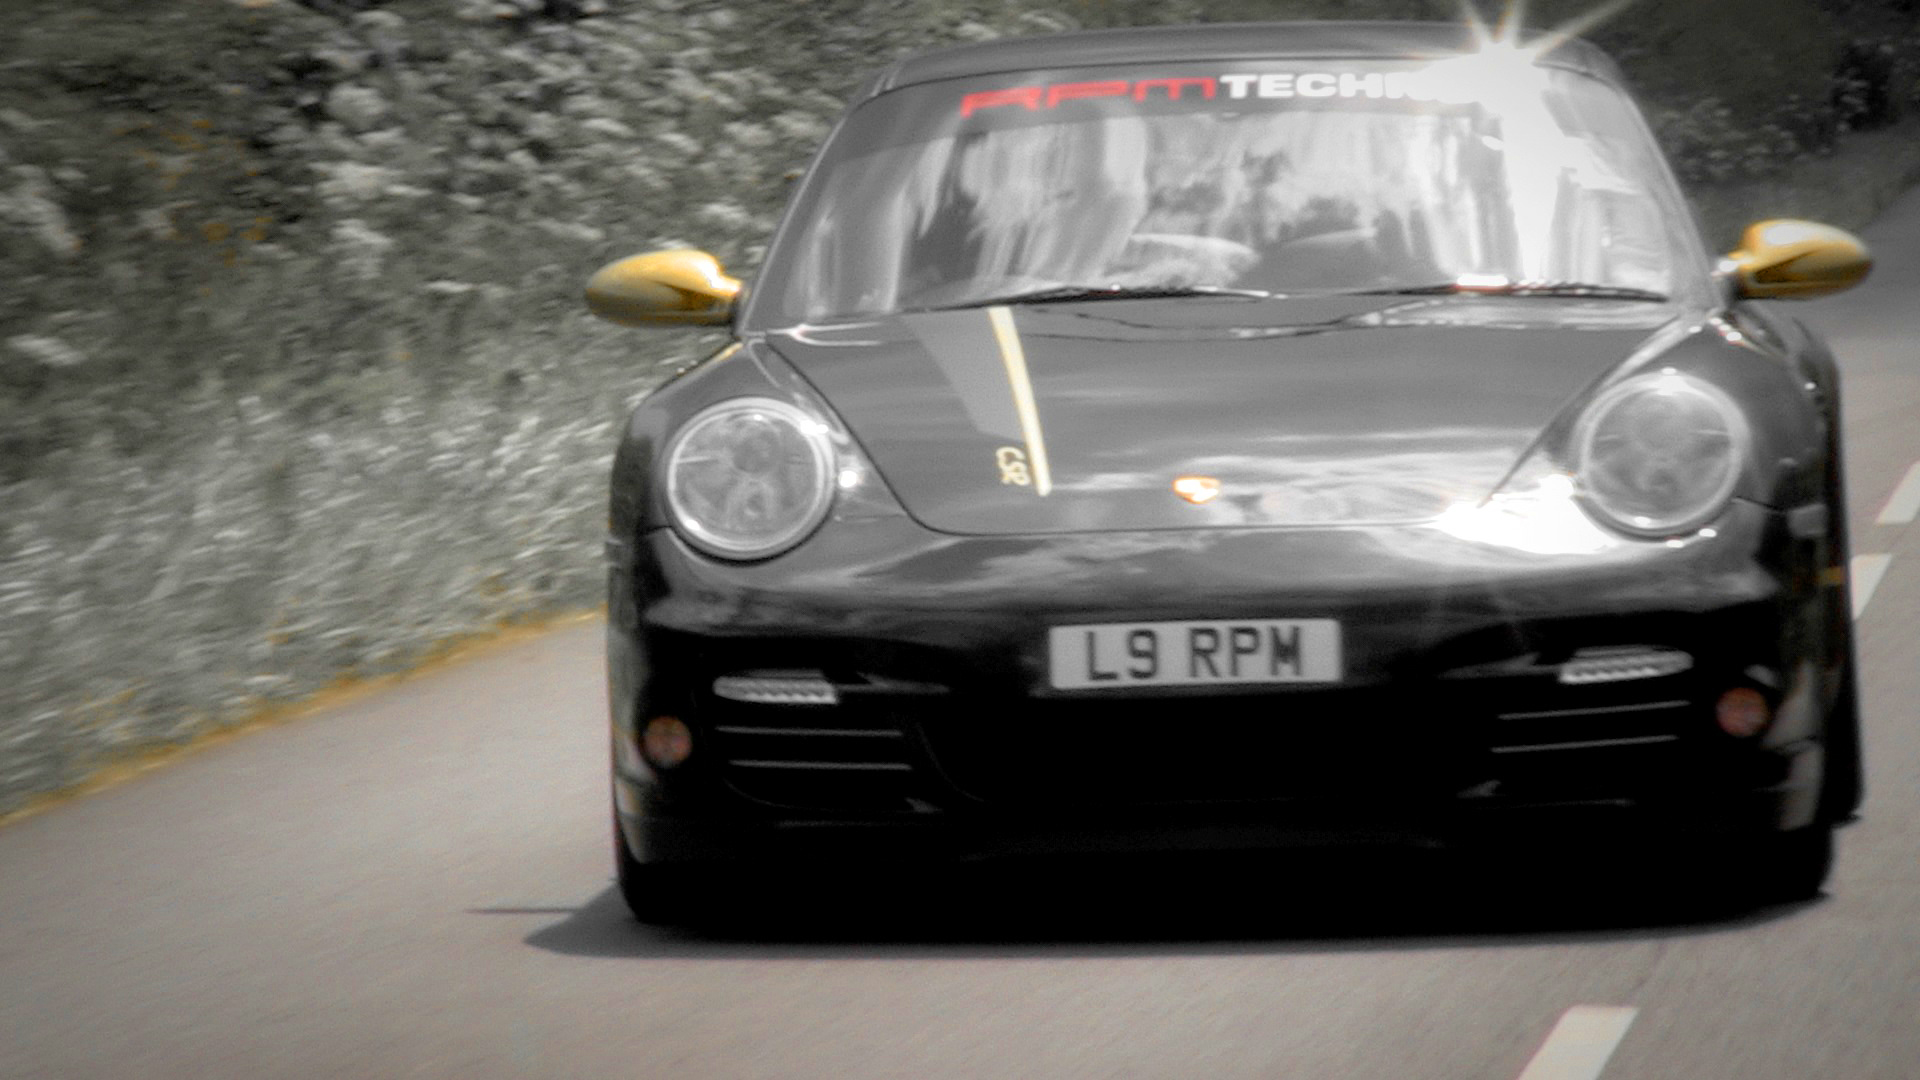 Video: Can RPM Technik improve the Porsche 911 with the CSR?